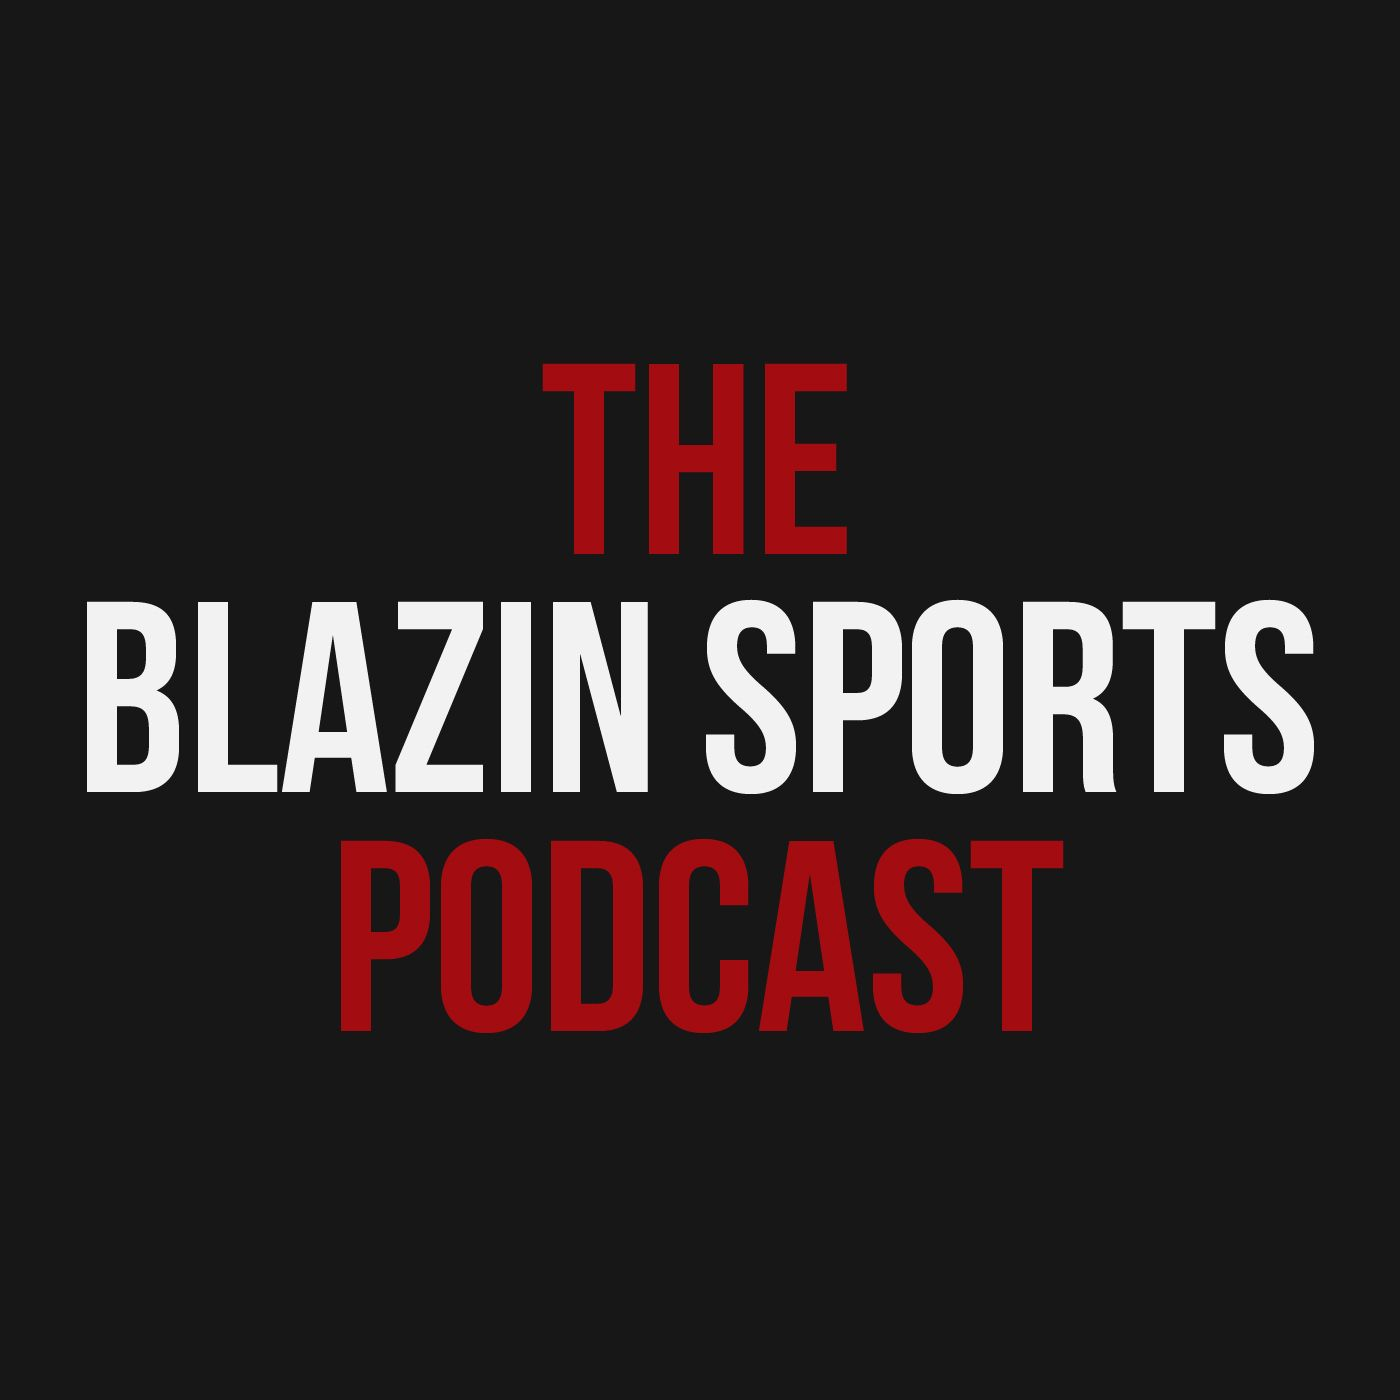 Blazin Sports Podcast